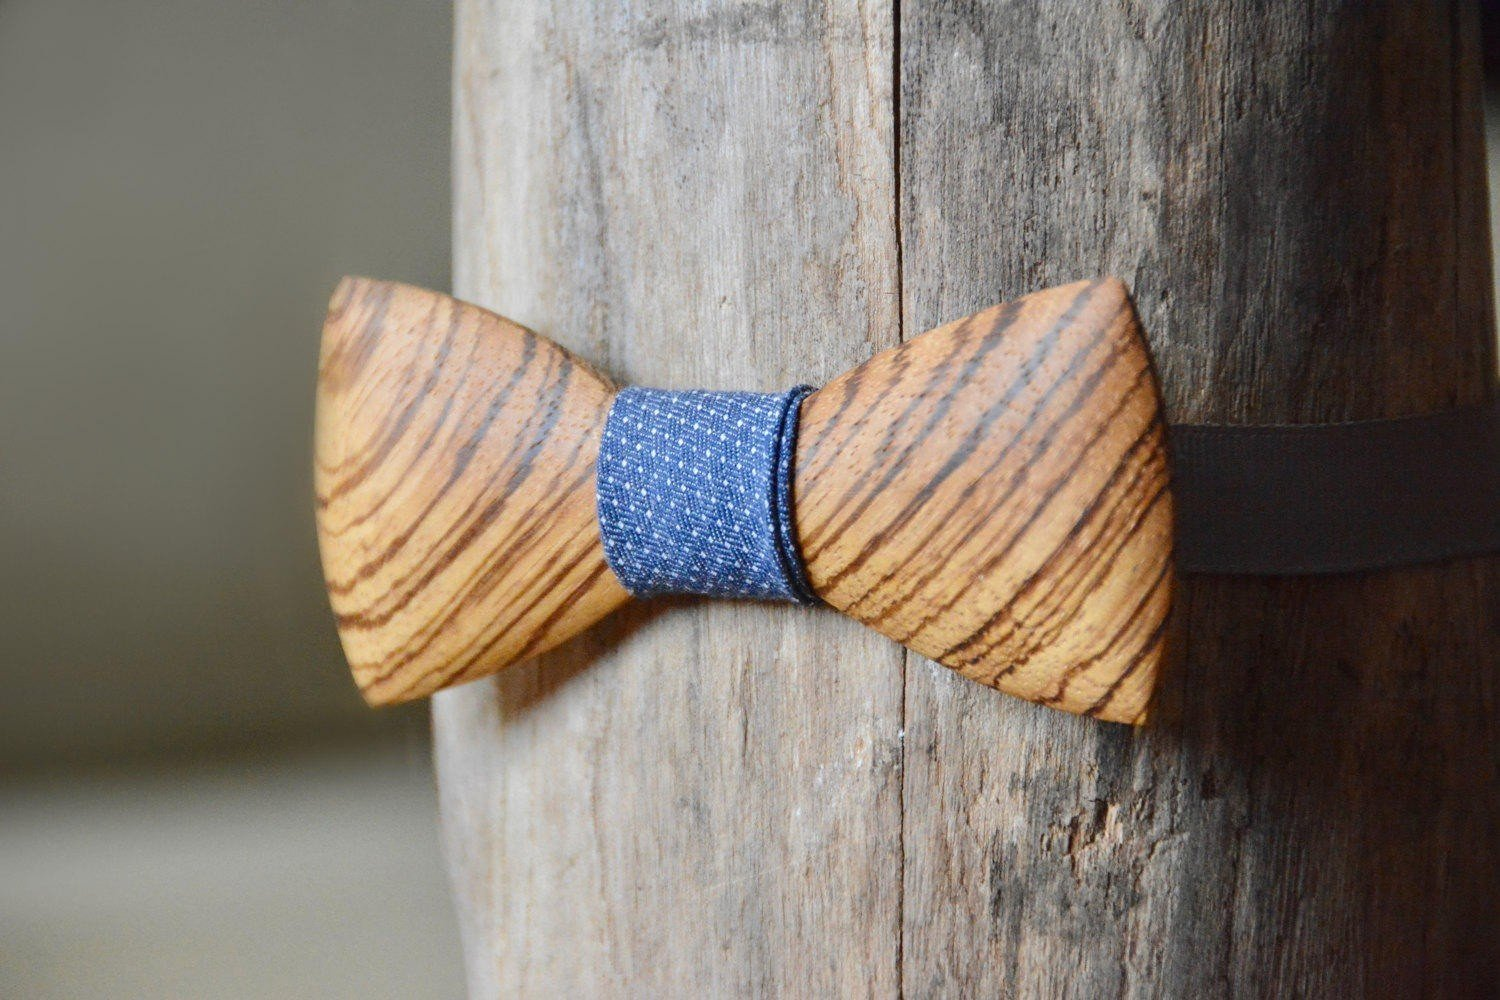 The Wooden Bow Tie: An Emerging Fashion Trend